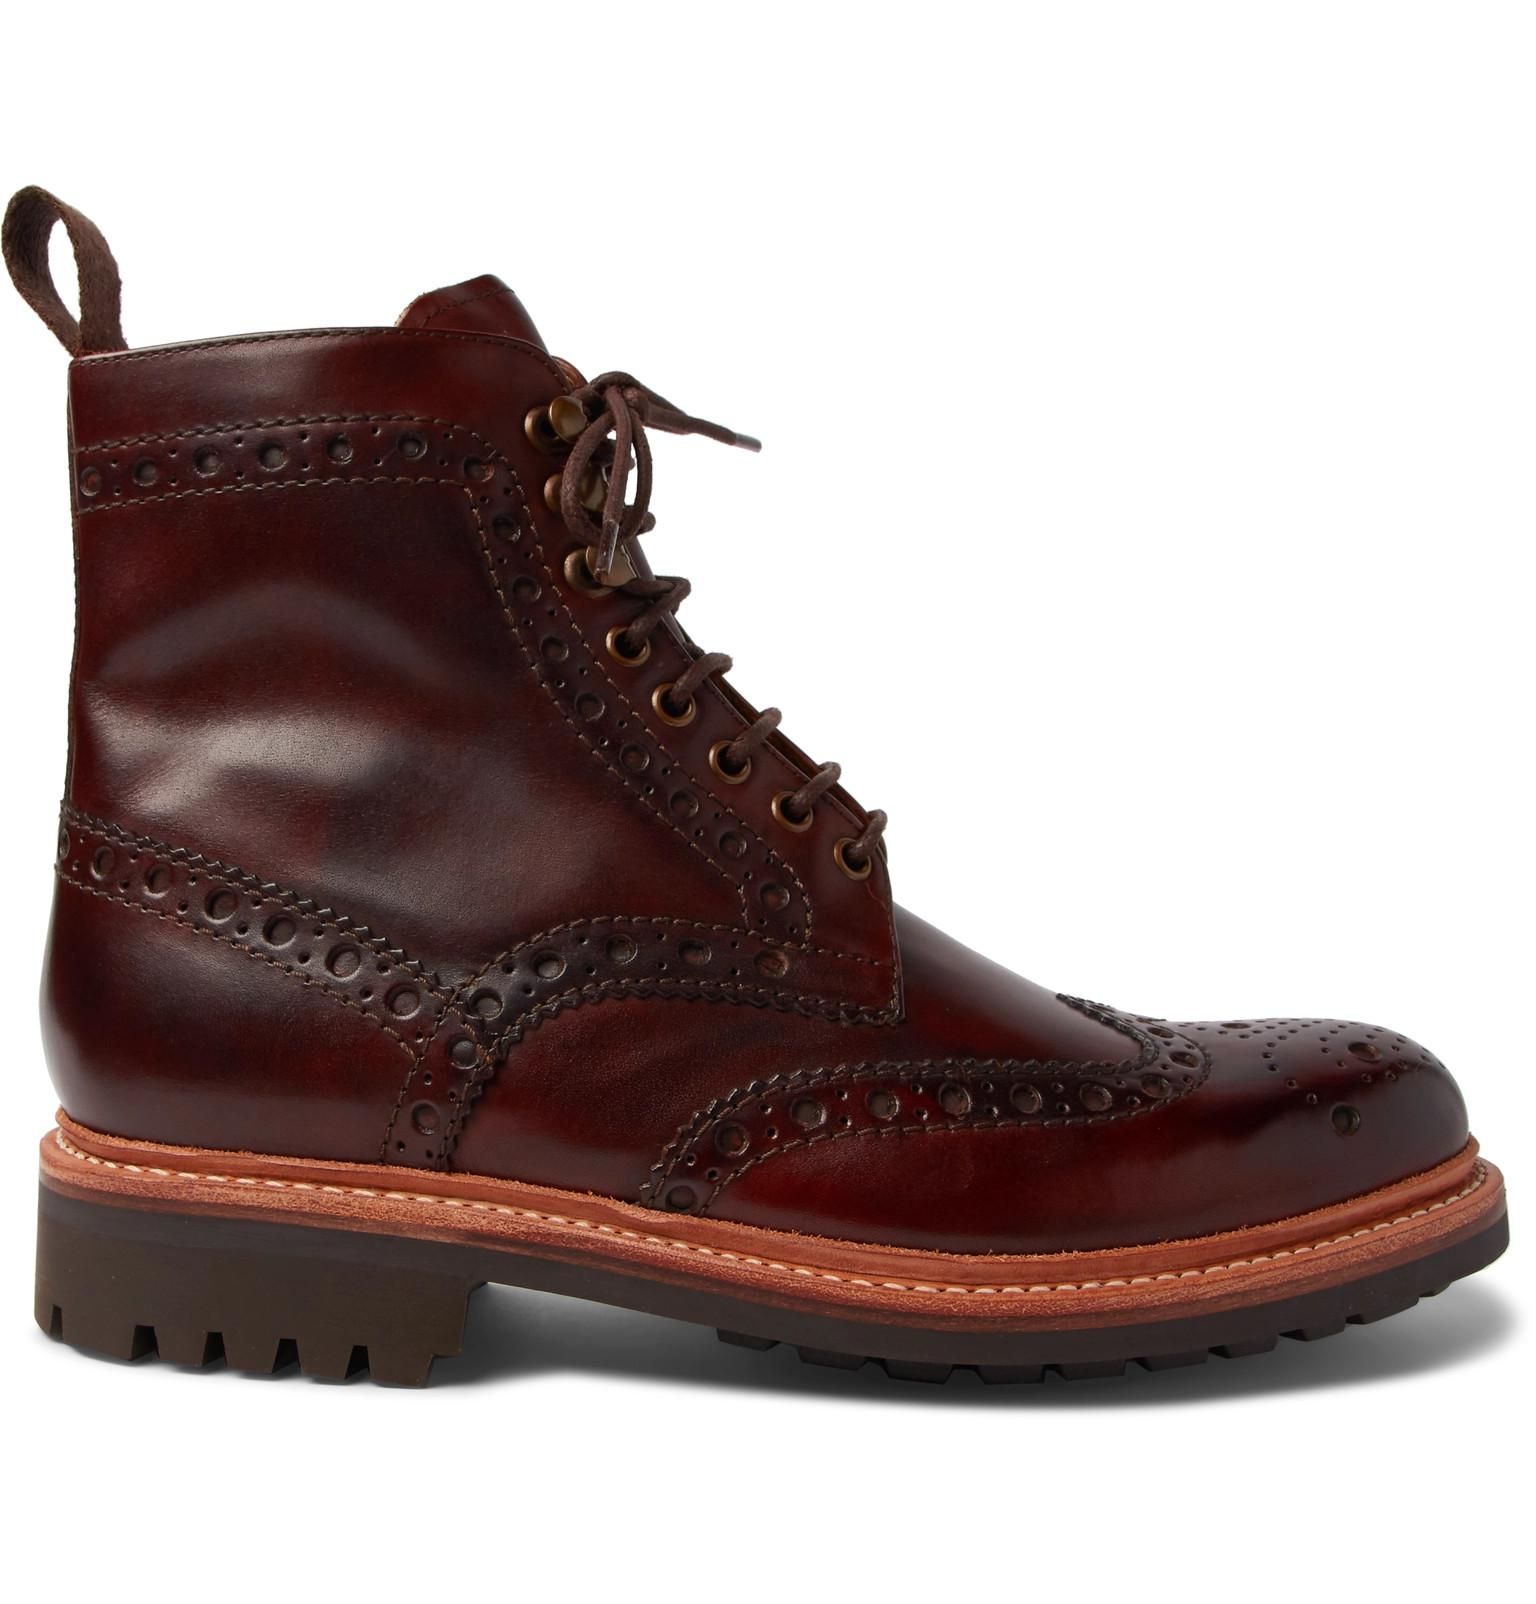 0bba8a3adcb Lyst - Grenson Fred Burnished-leather Brogue Boots in Brown for Men